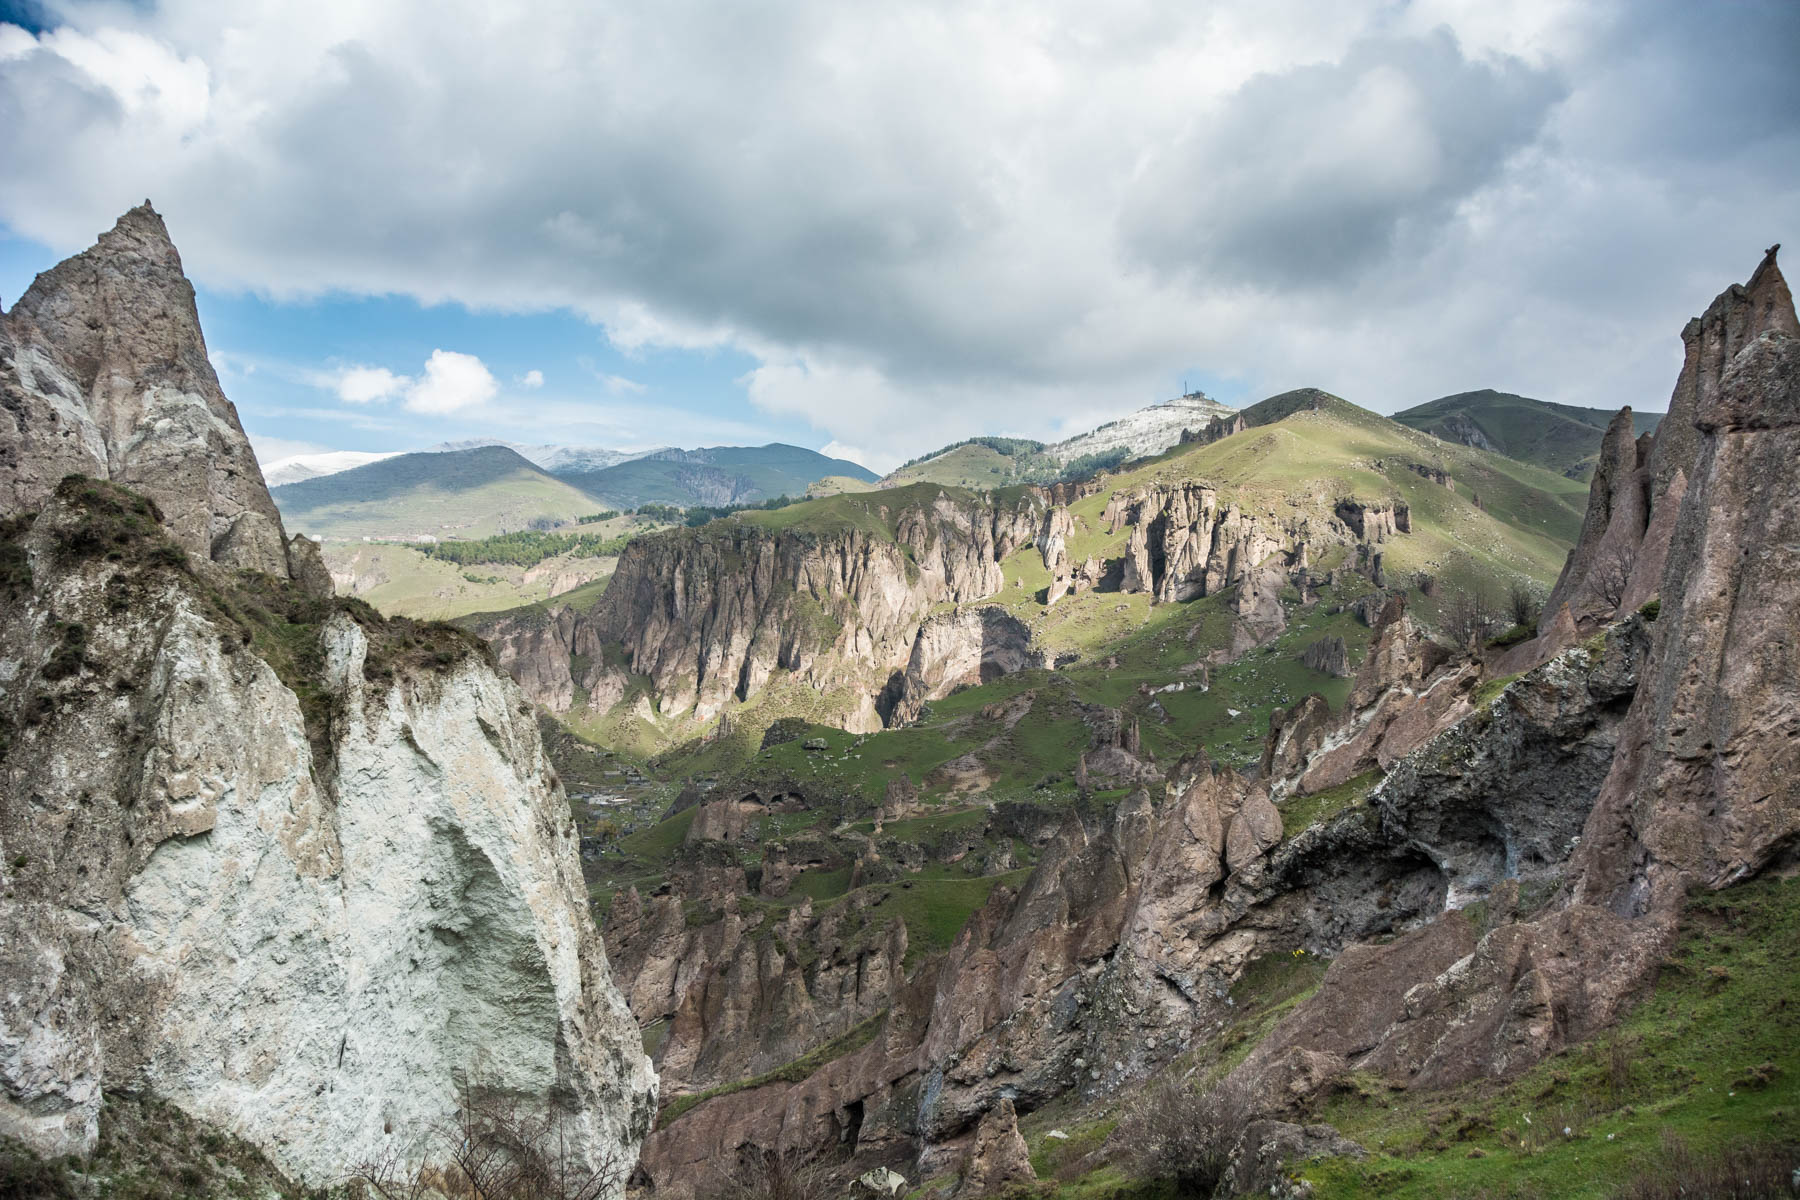 How to get to Tatev from Goris, Armenia - Rocky spires on the edge of the city of Goris, Armenia